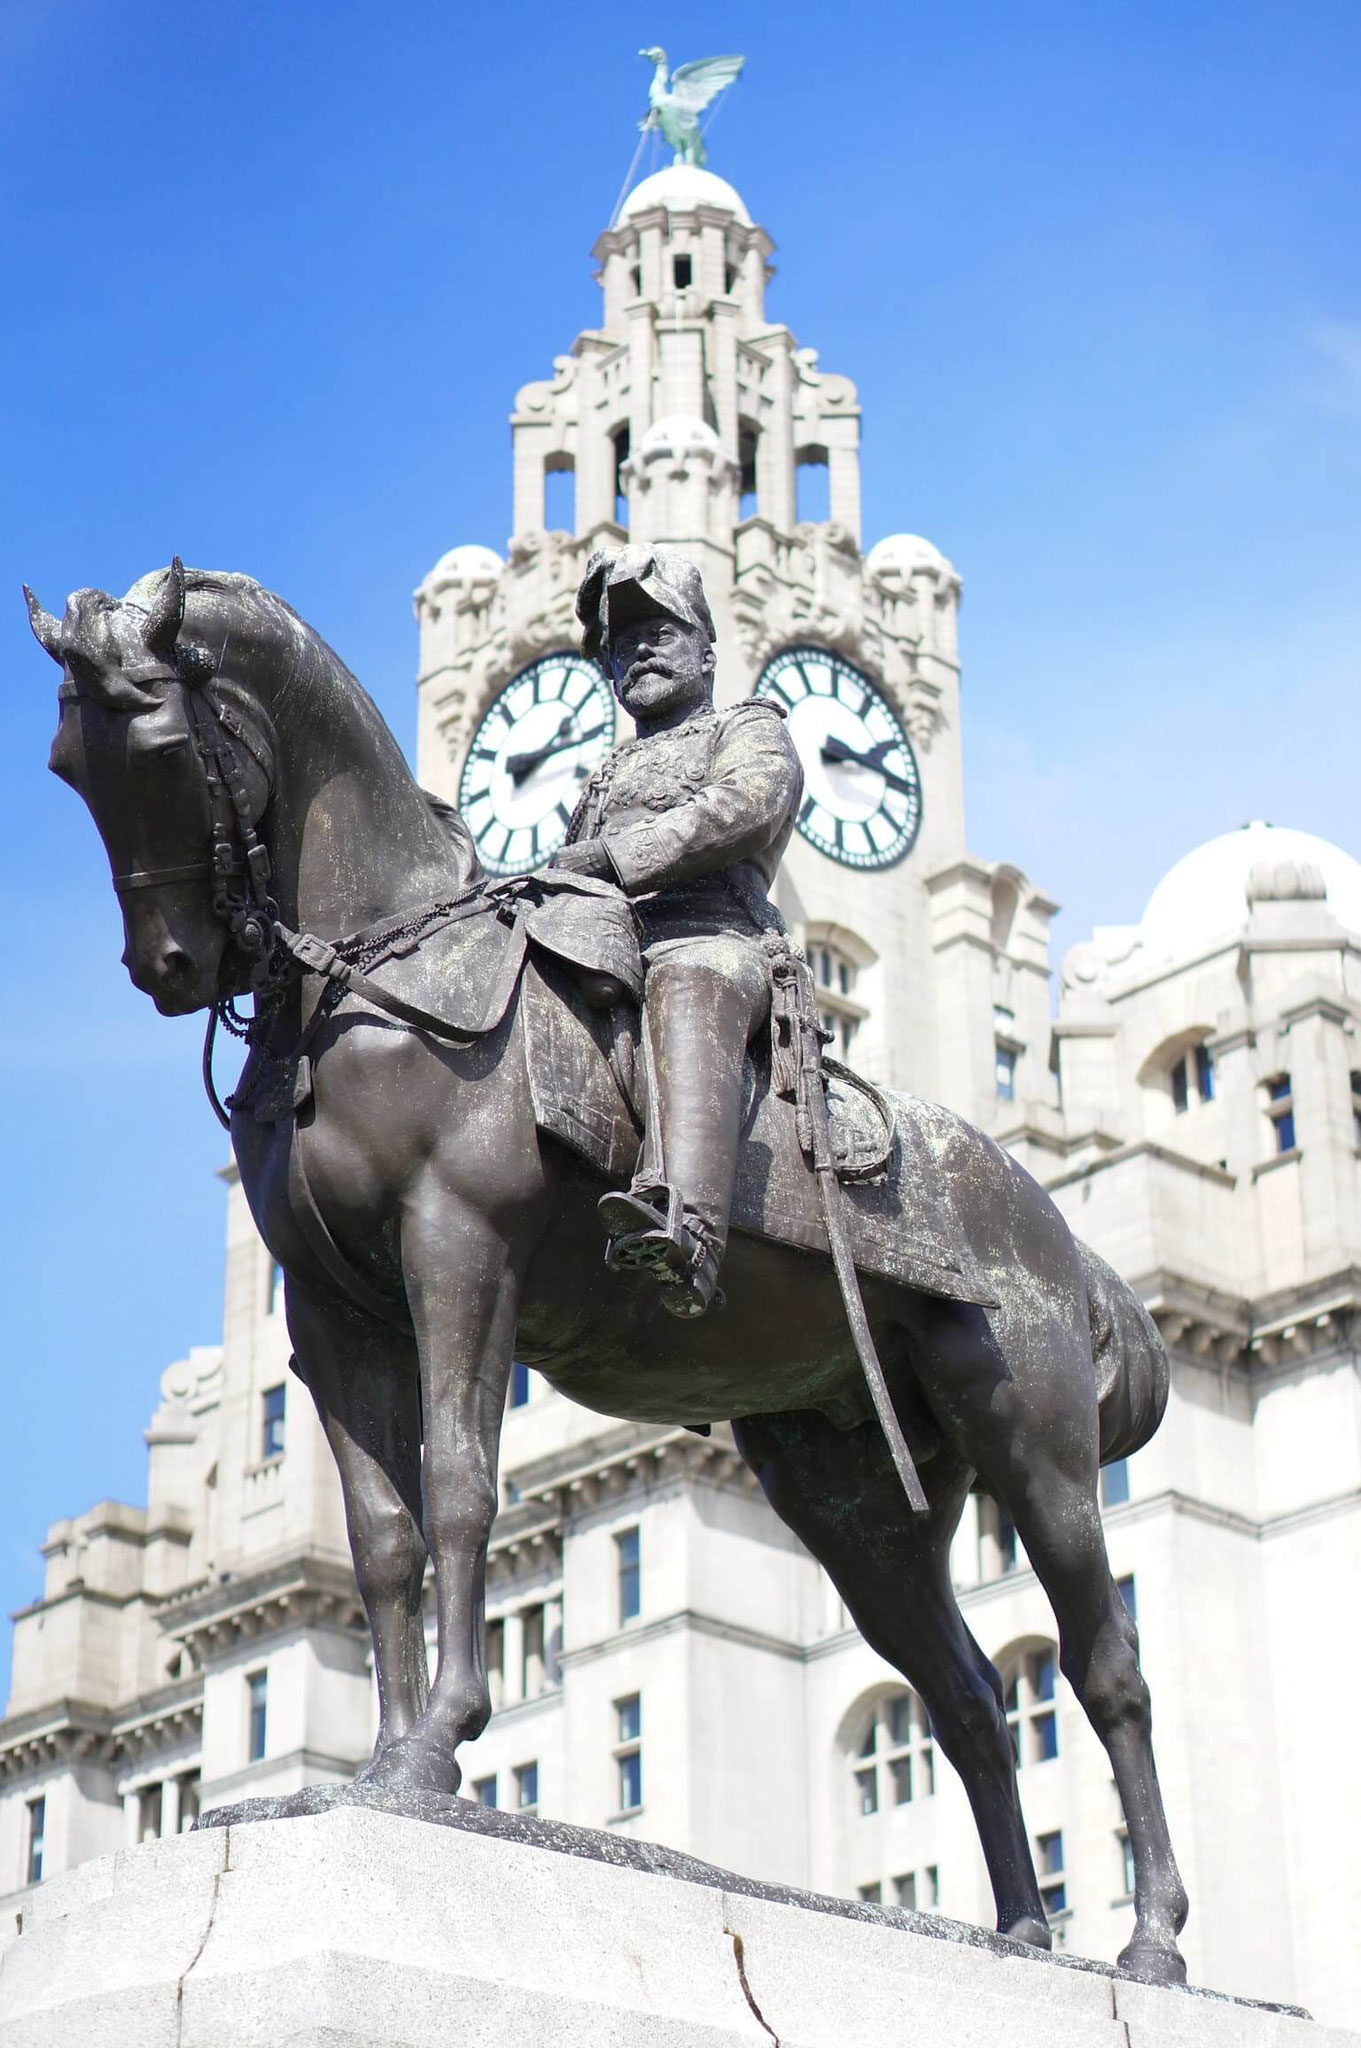 Monumento Do Rei Edward VII in Liverpool